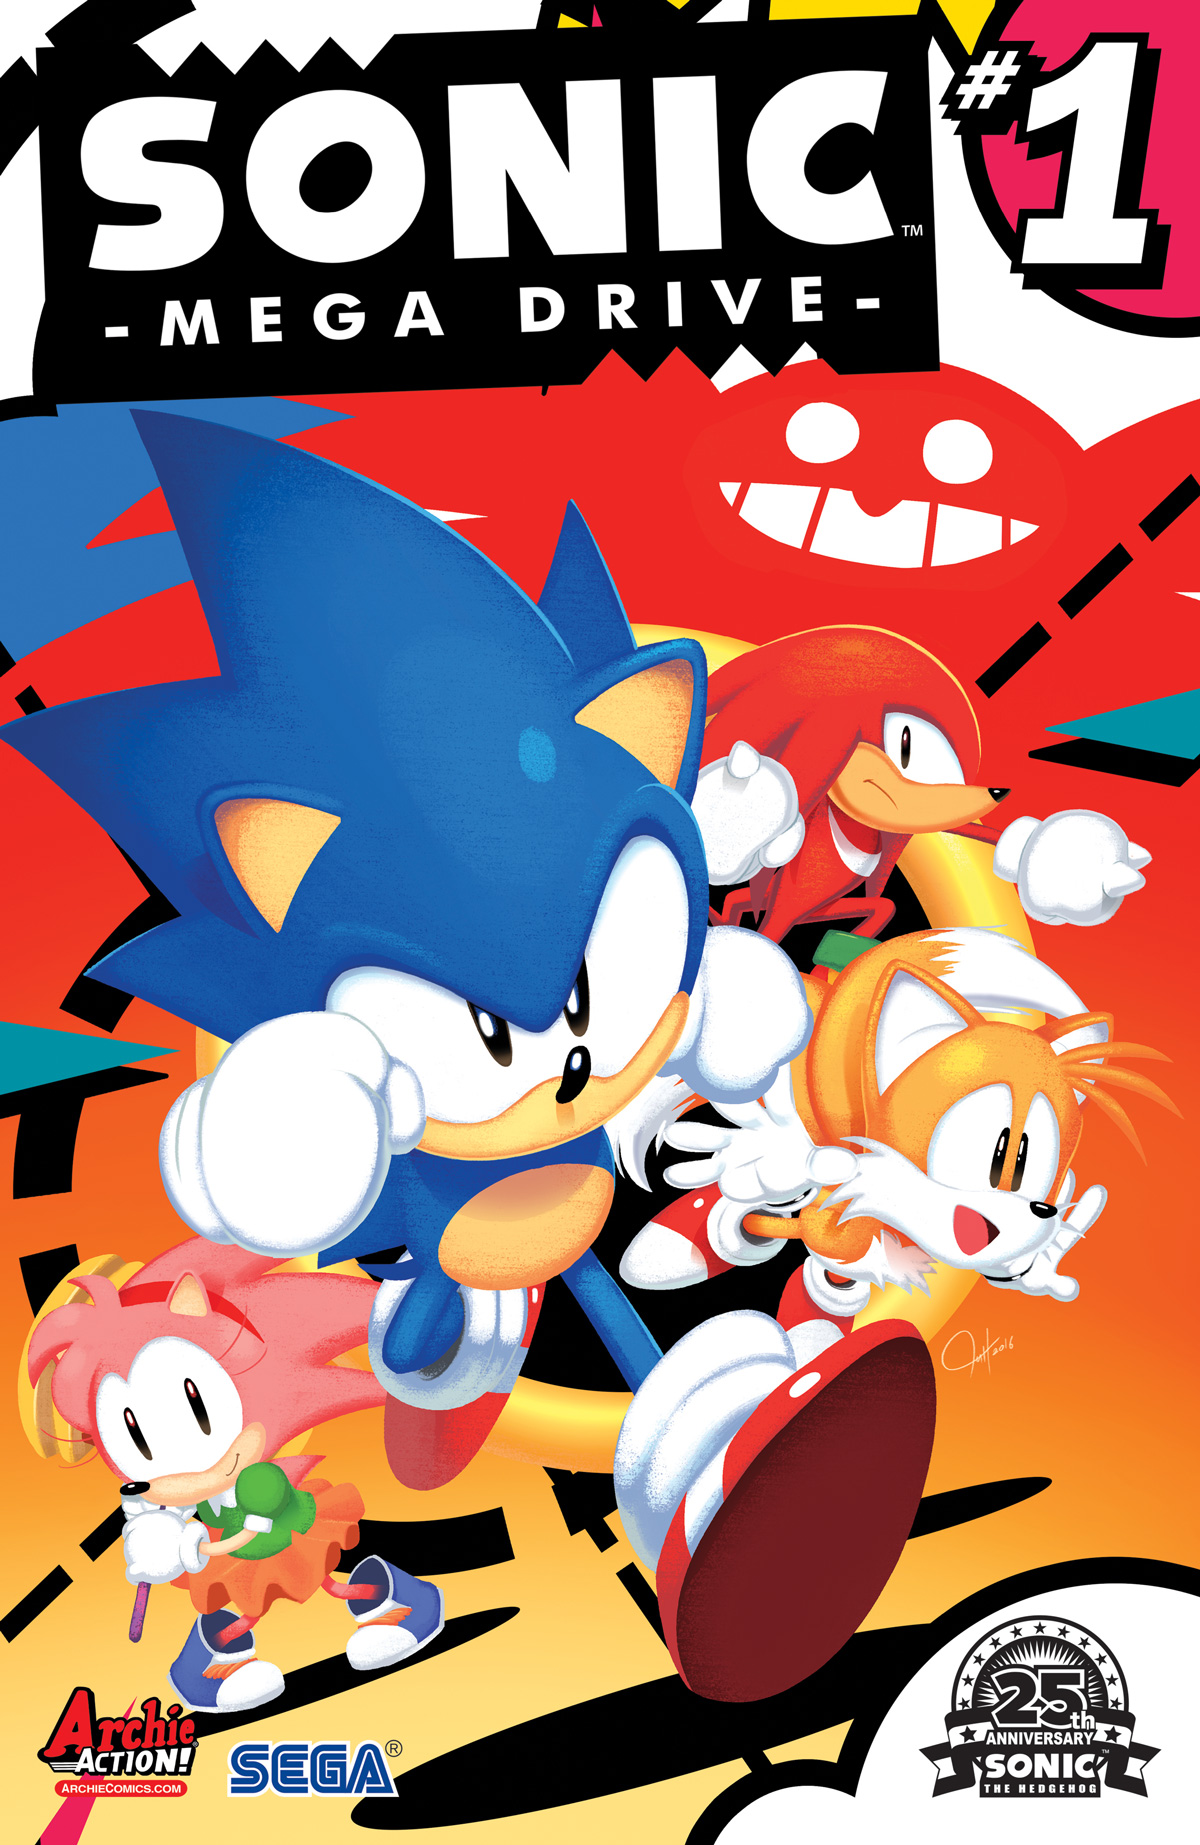 Archie Comics Celebrates 25 Years Of Sonic The Hedgehog With Sonic Mega Drive Archie Comics